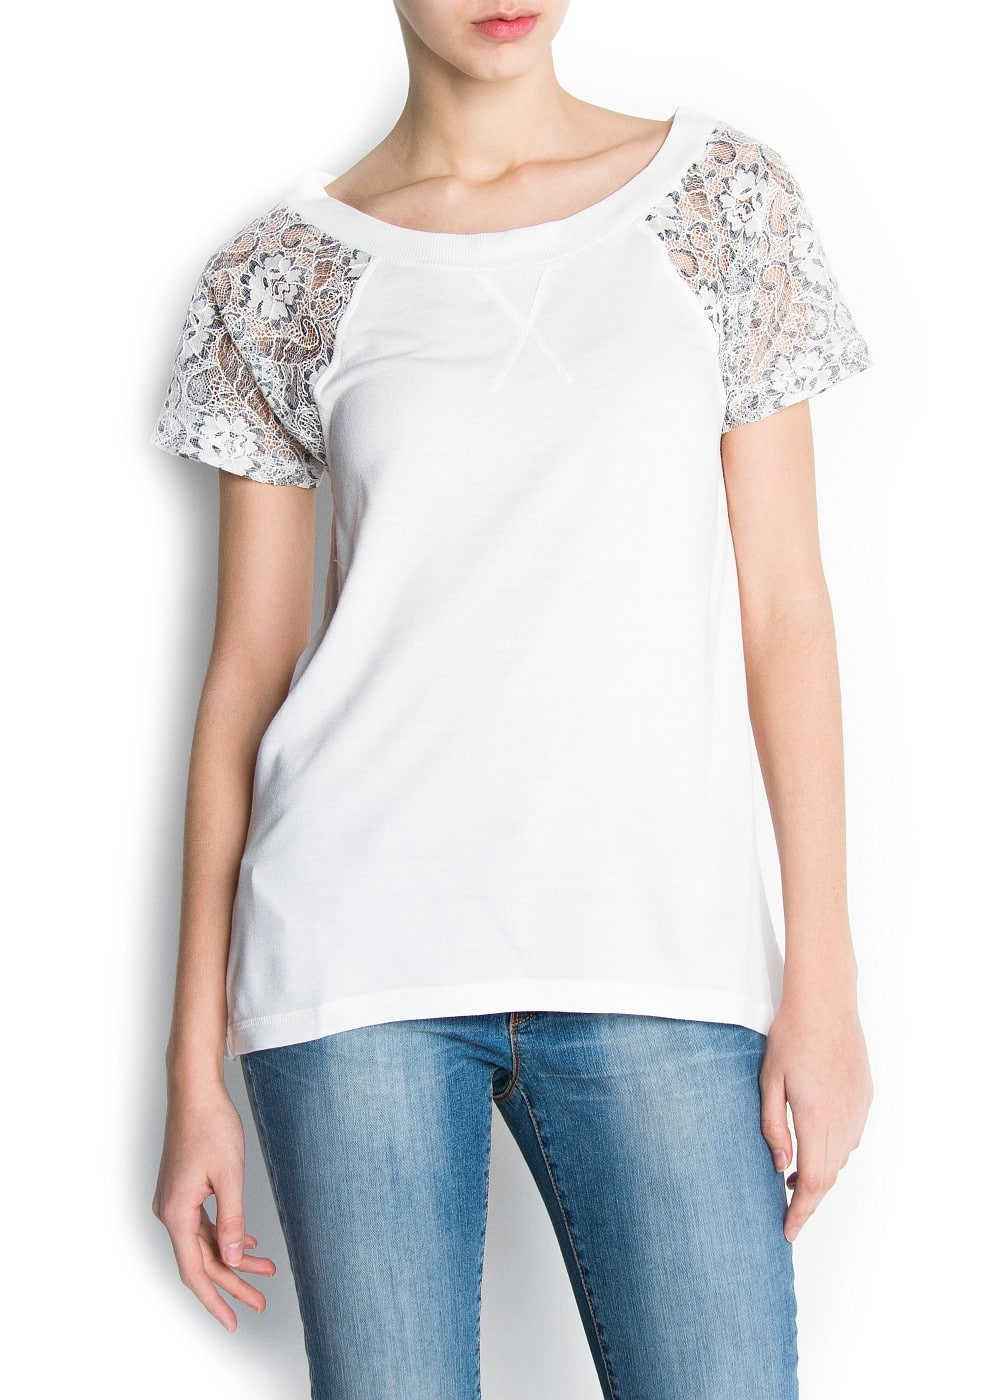 Lace sleeved t-shirt